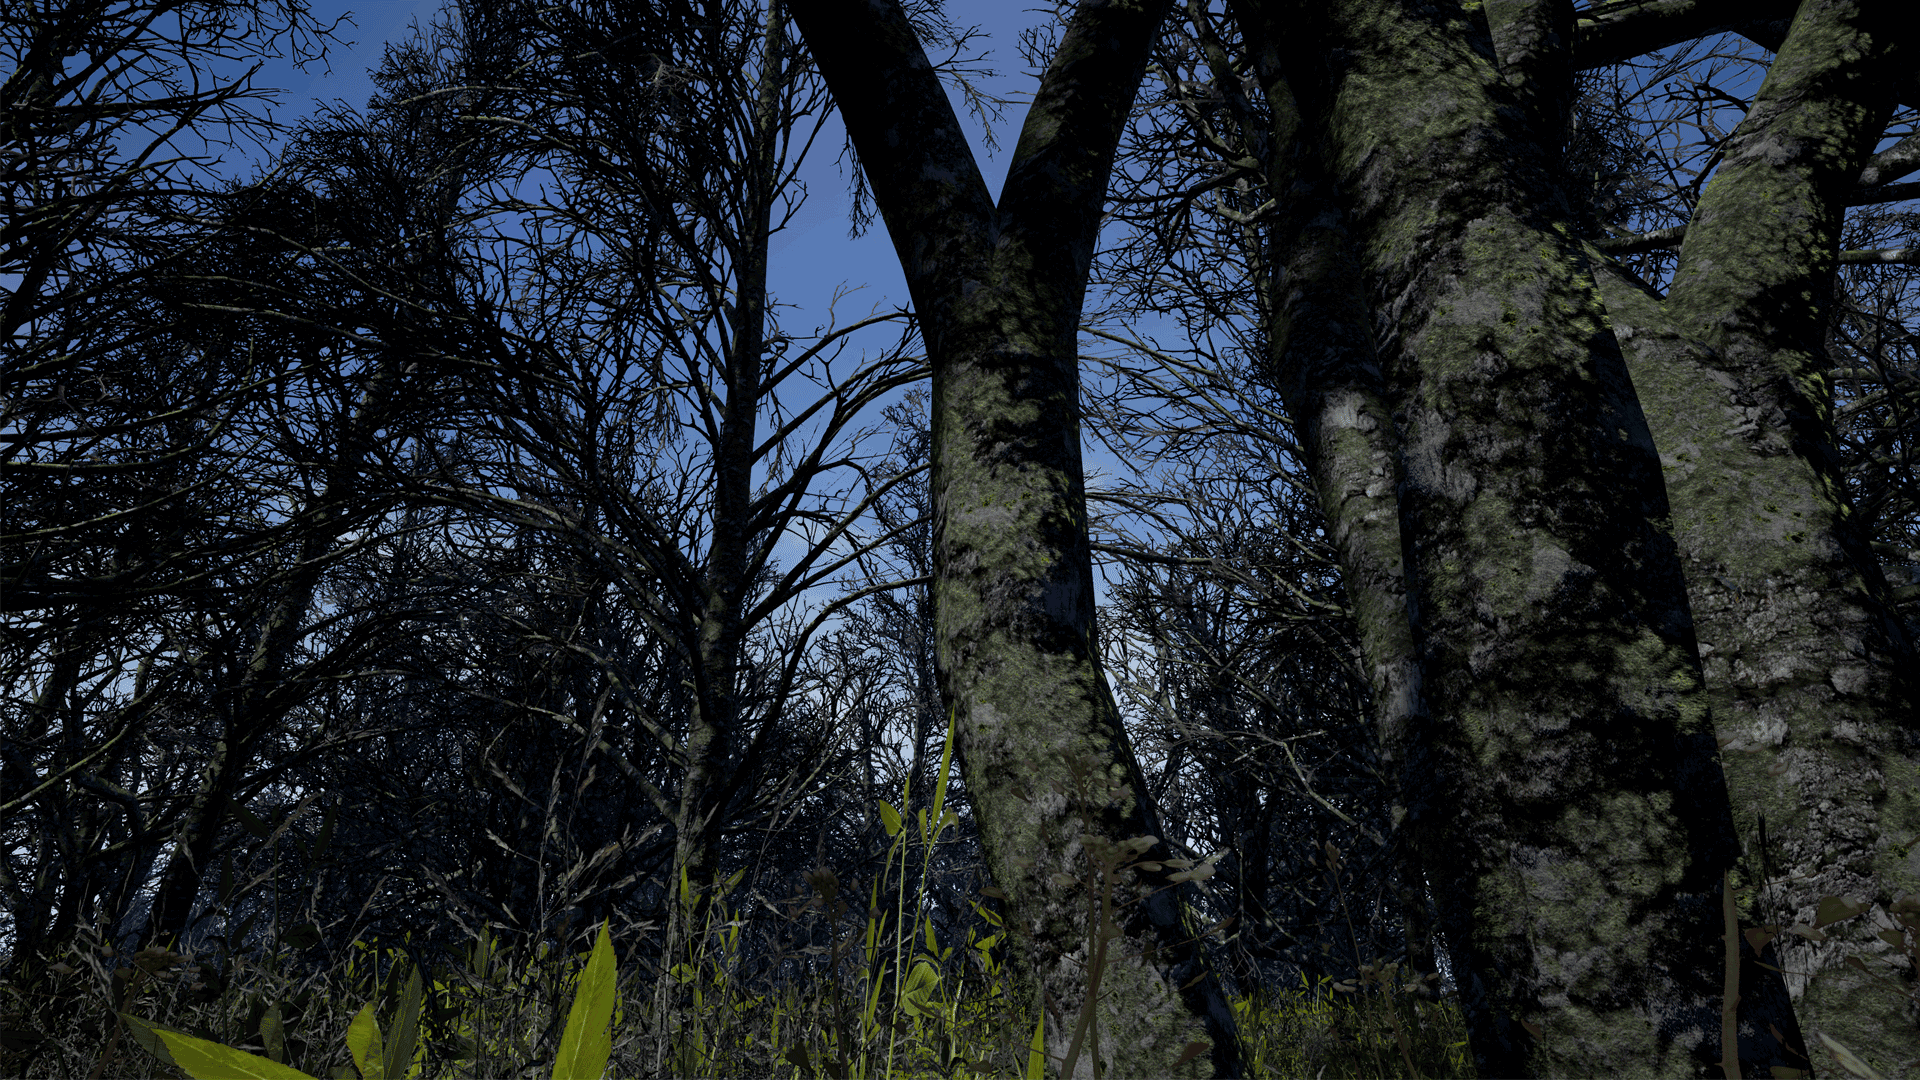 swamp screenshot 02 1920x1080 8325c5bb936d41502eee36aa71c383ed - UE4 Swamp 4.14-4.21 - 树木和灌木丛资源